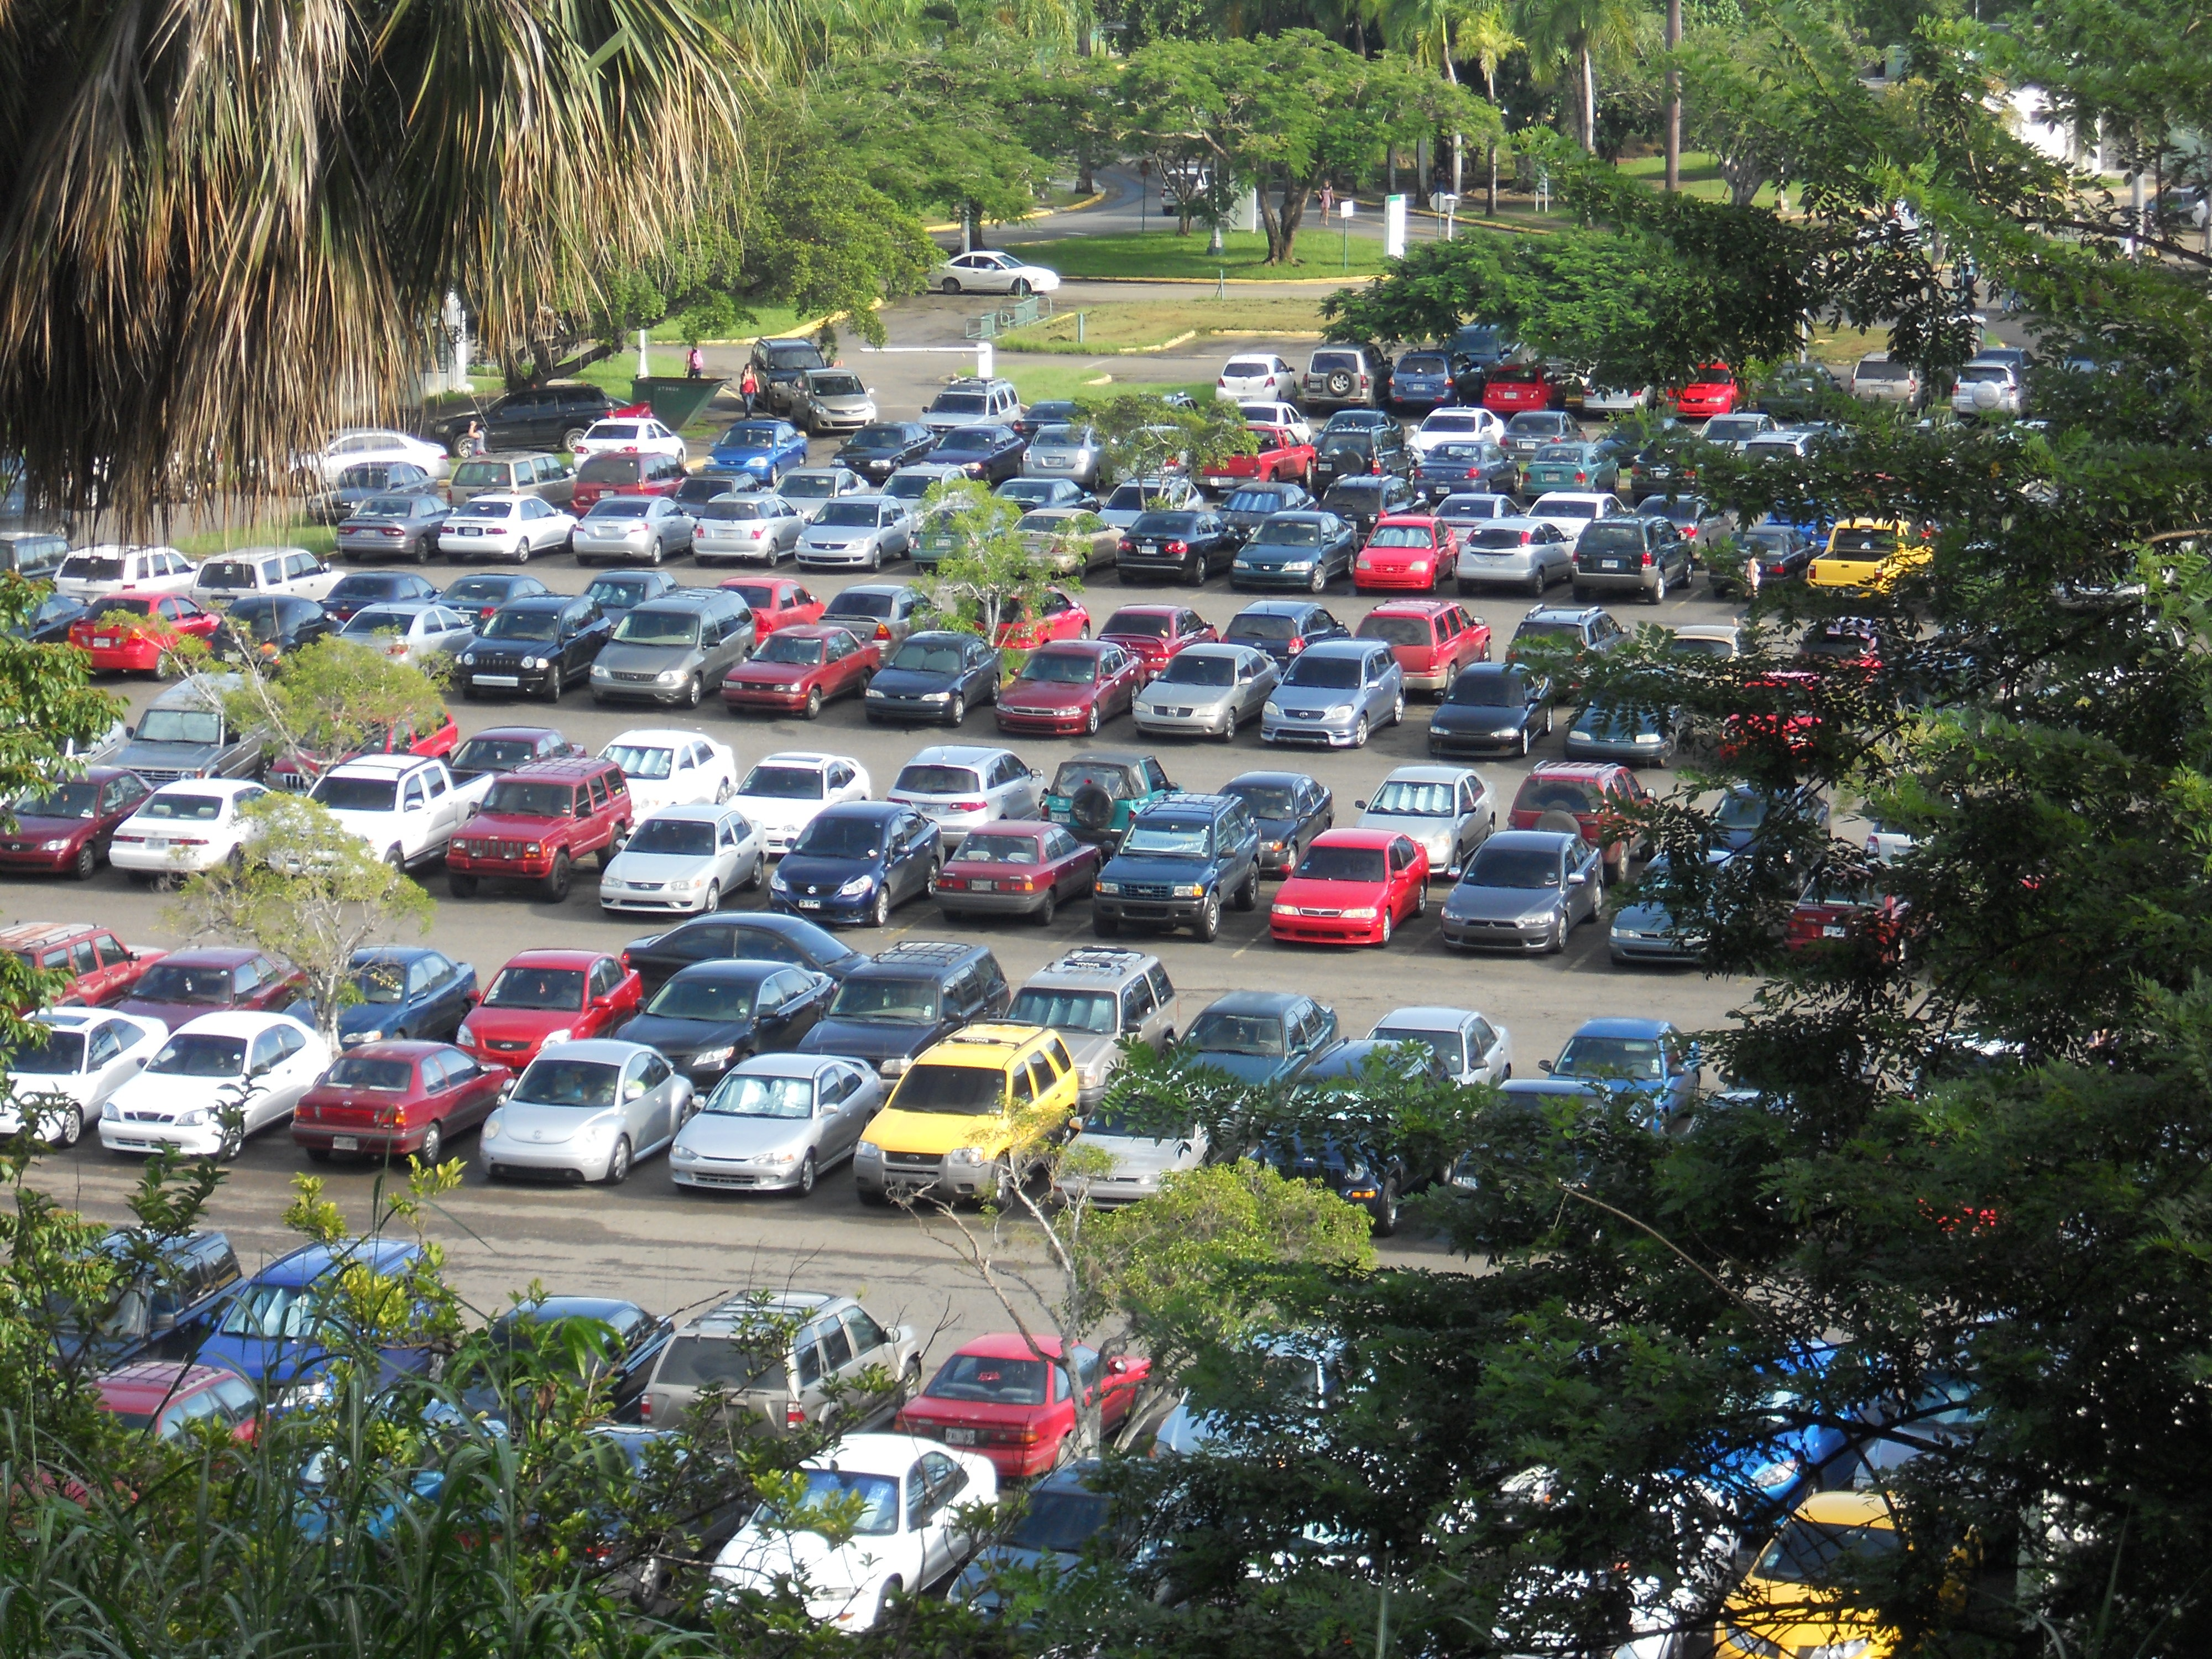 Every year the parking at the university of puerto rico in mayagüez